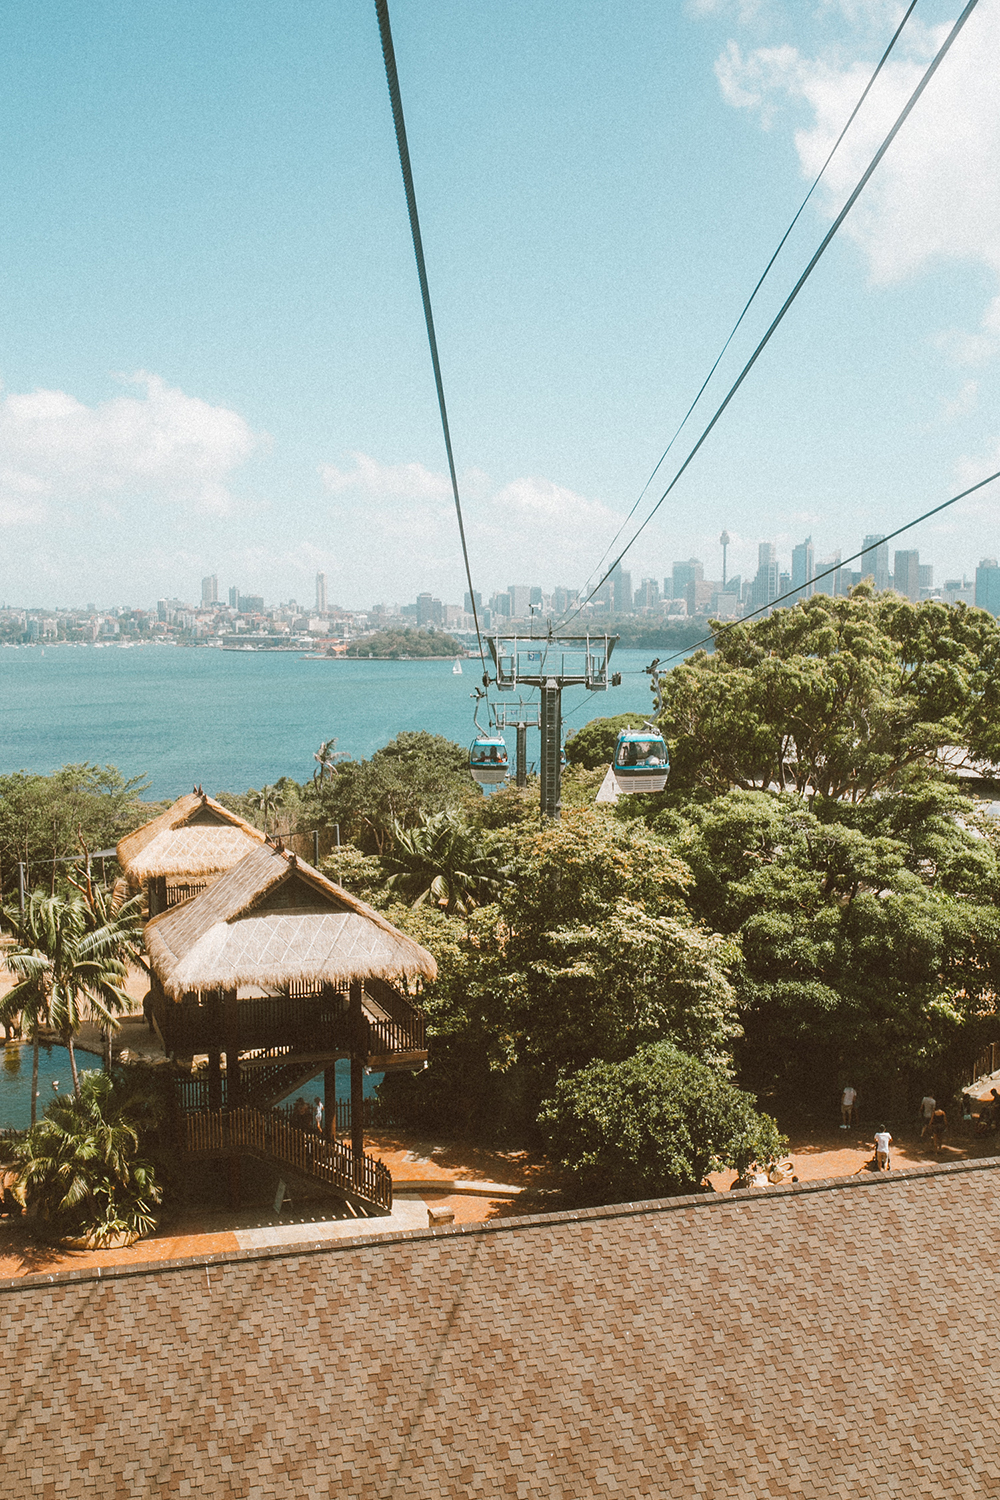 livvyland-blog-olivia-watson-austin-texas-fashion-travel-lifestyle-blogger-sydney-melbourne-australia-taronga-zoo-tram-view